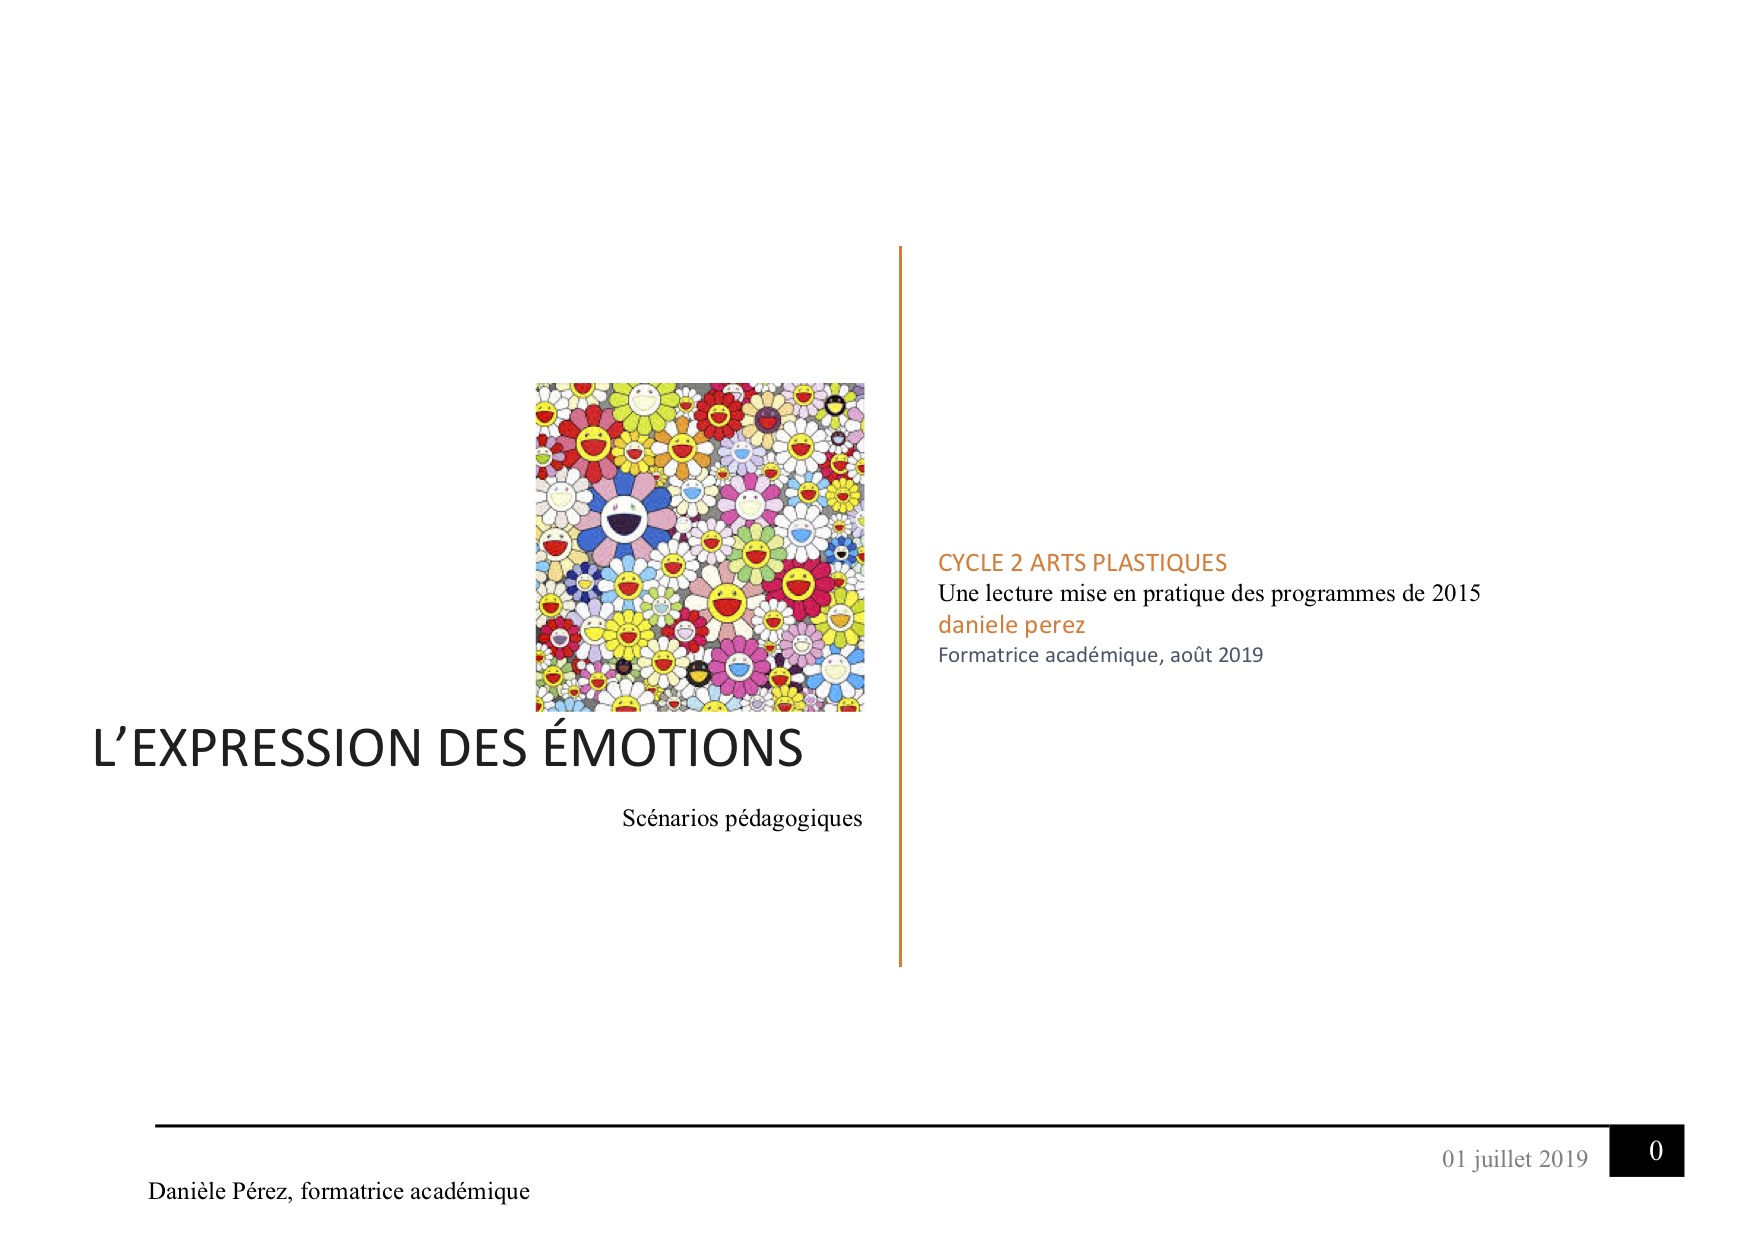 L'expression des émotions, Cycle 2